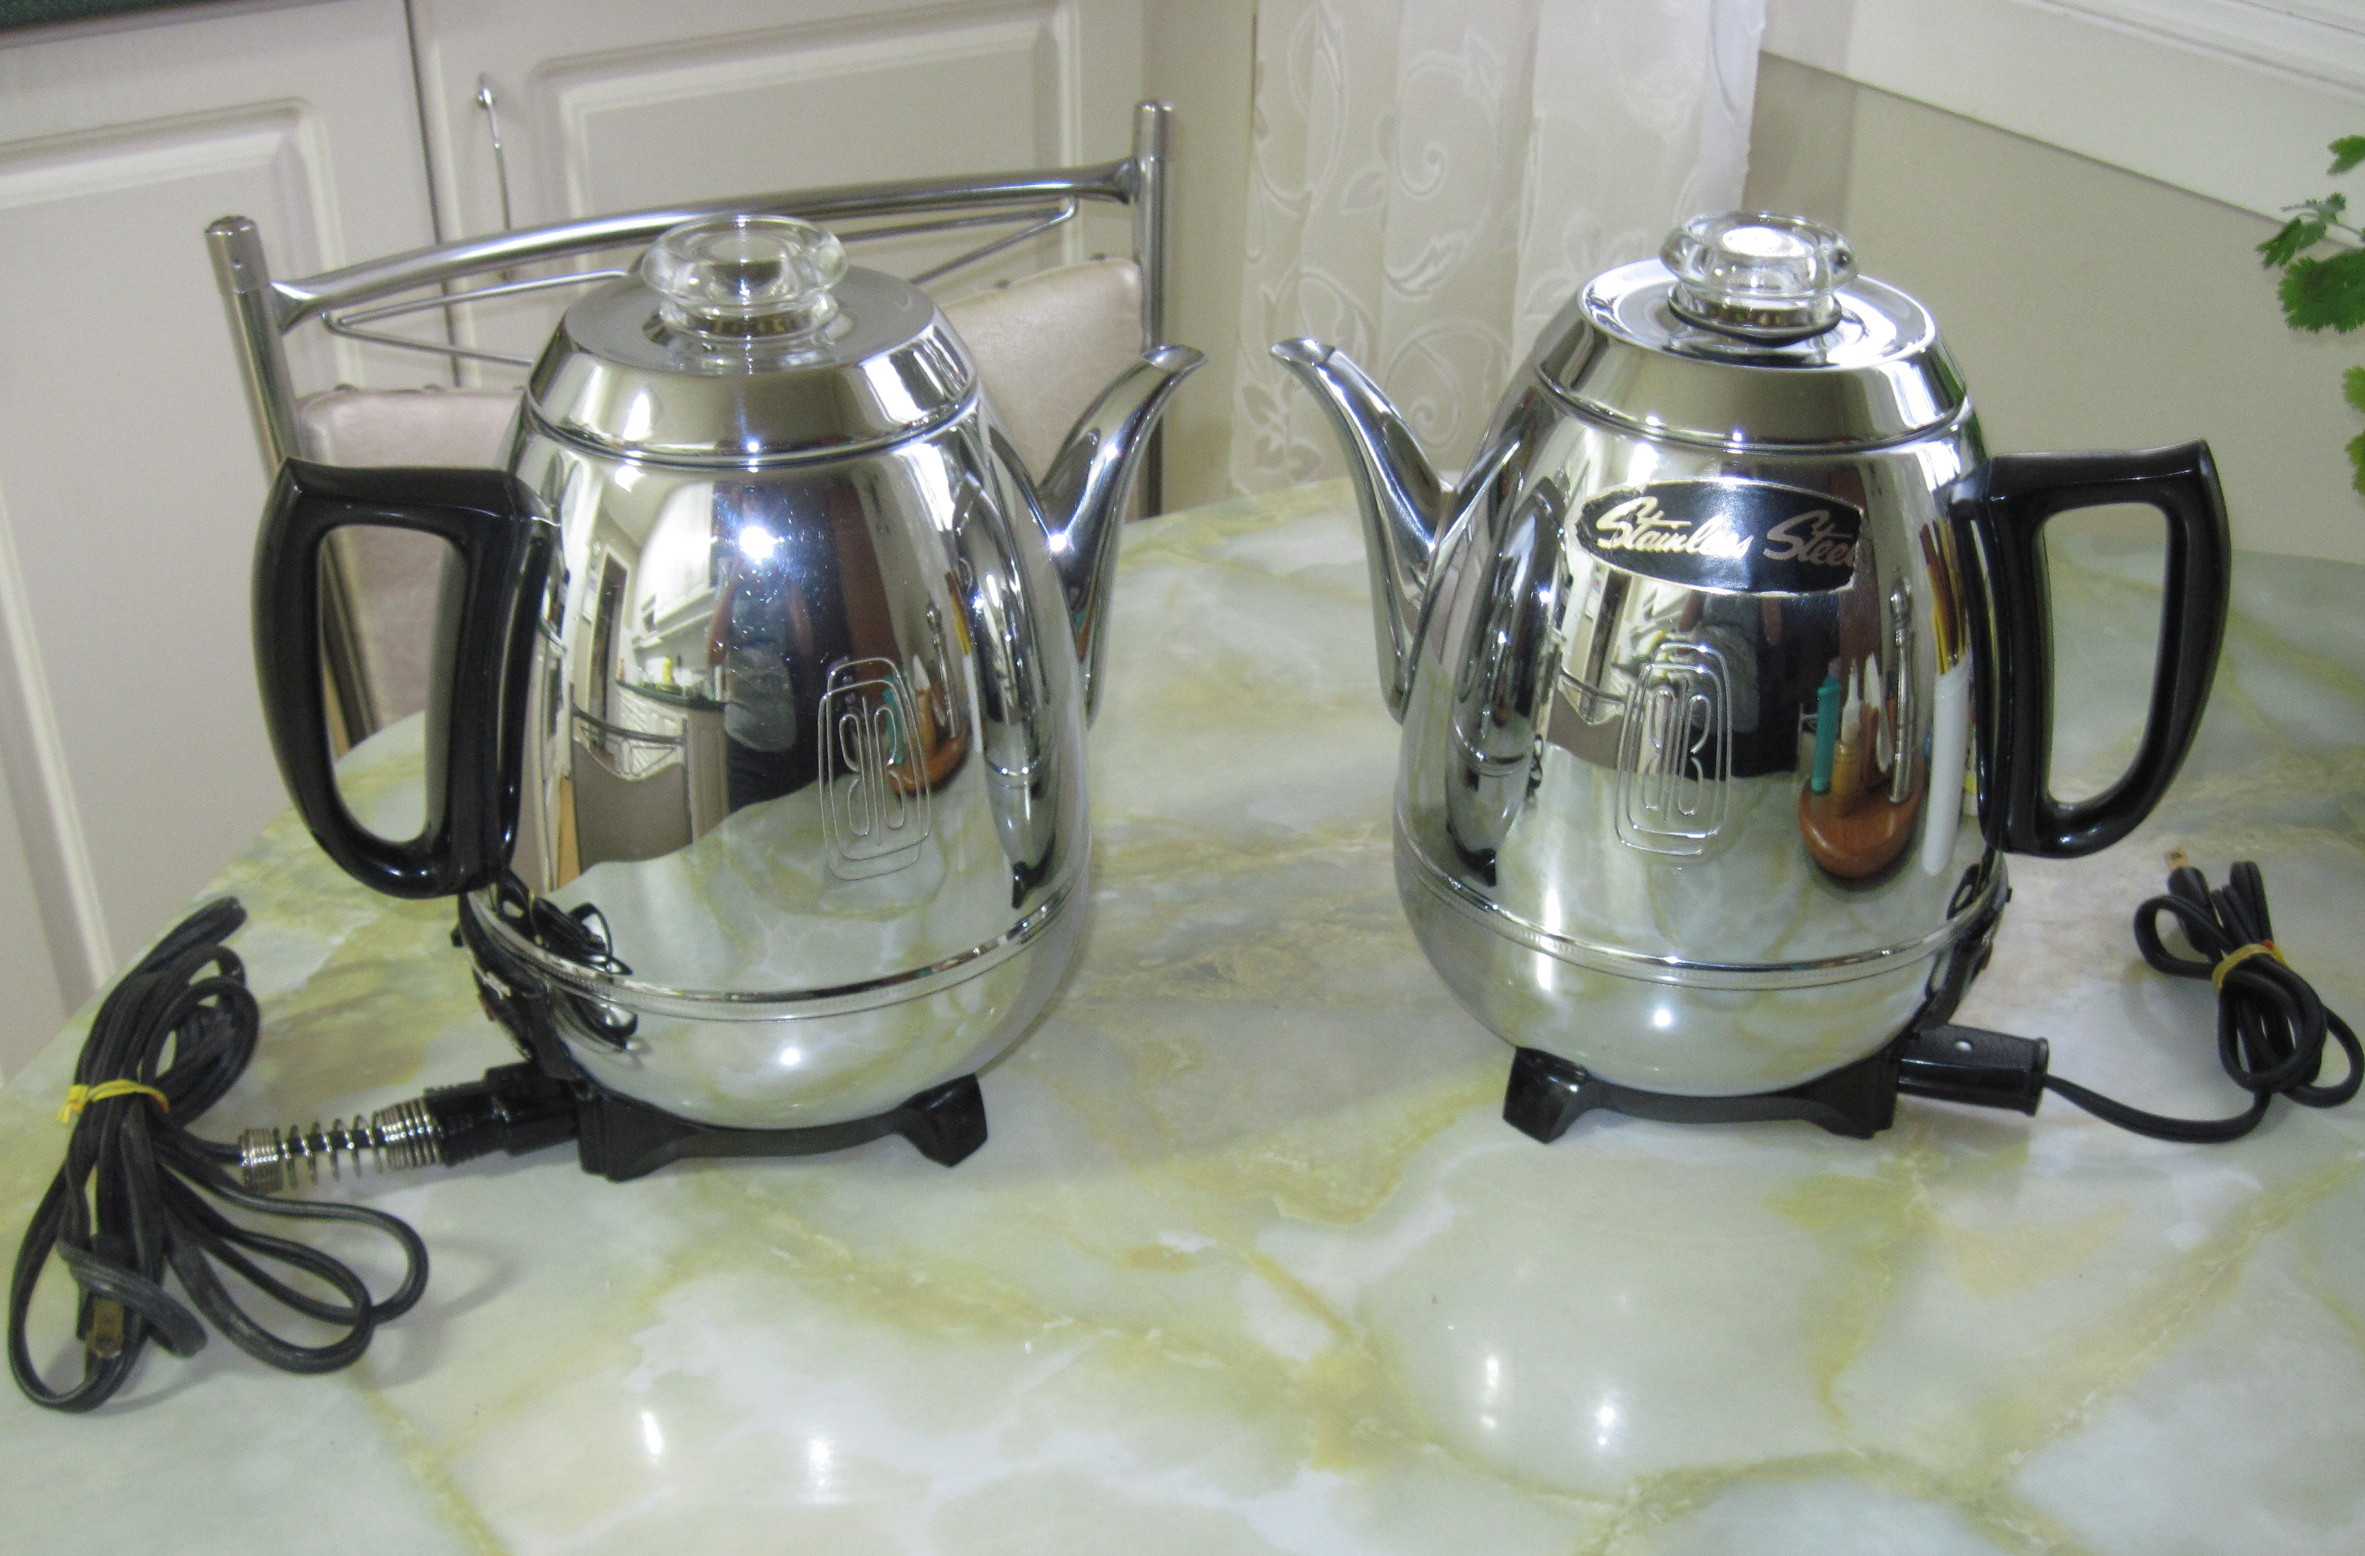 Kitchen appliances fabfindsblog